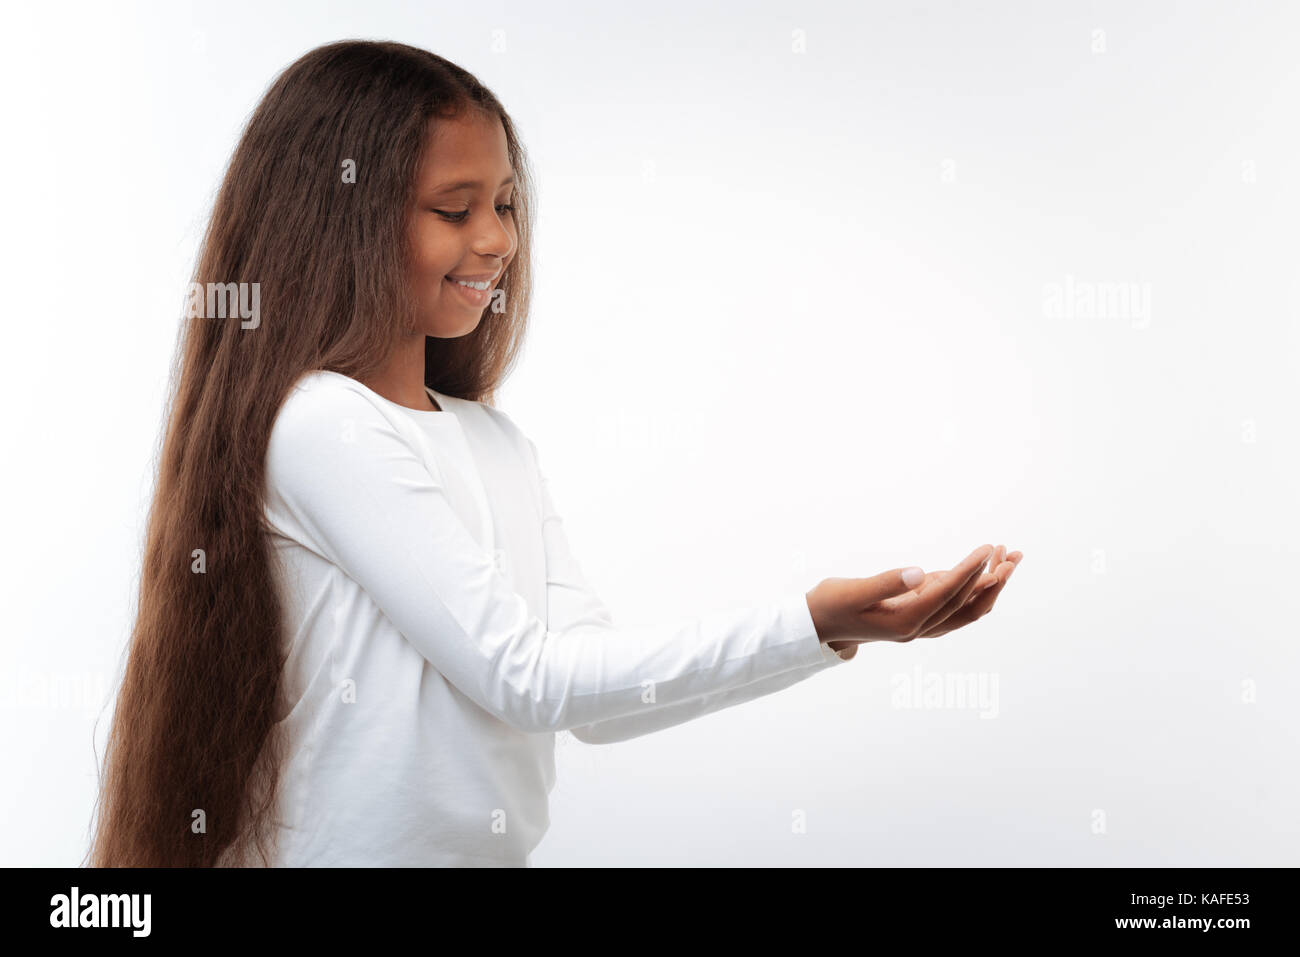 Beautiful pre-teen girl holding something small in her hands - Stock Image